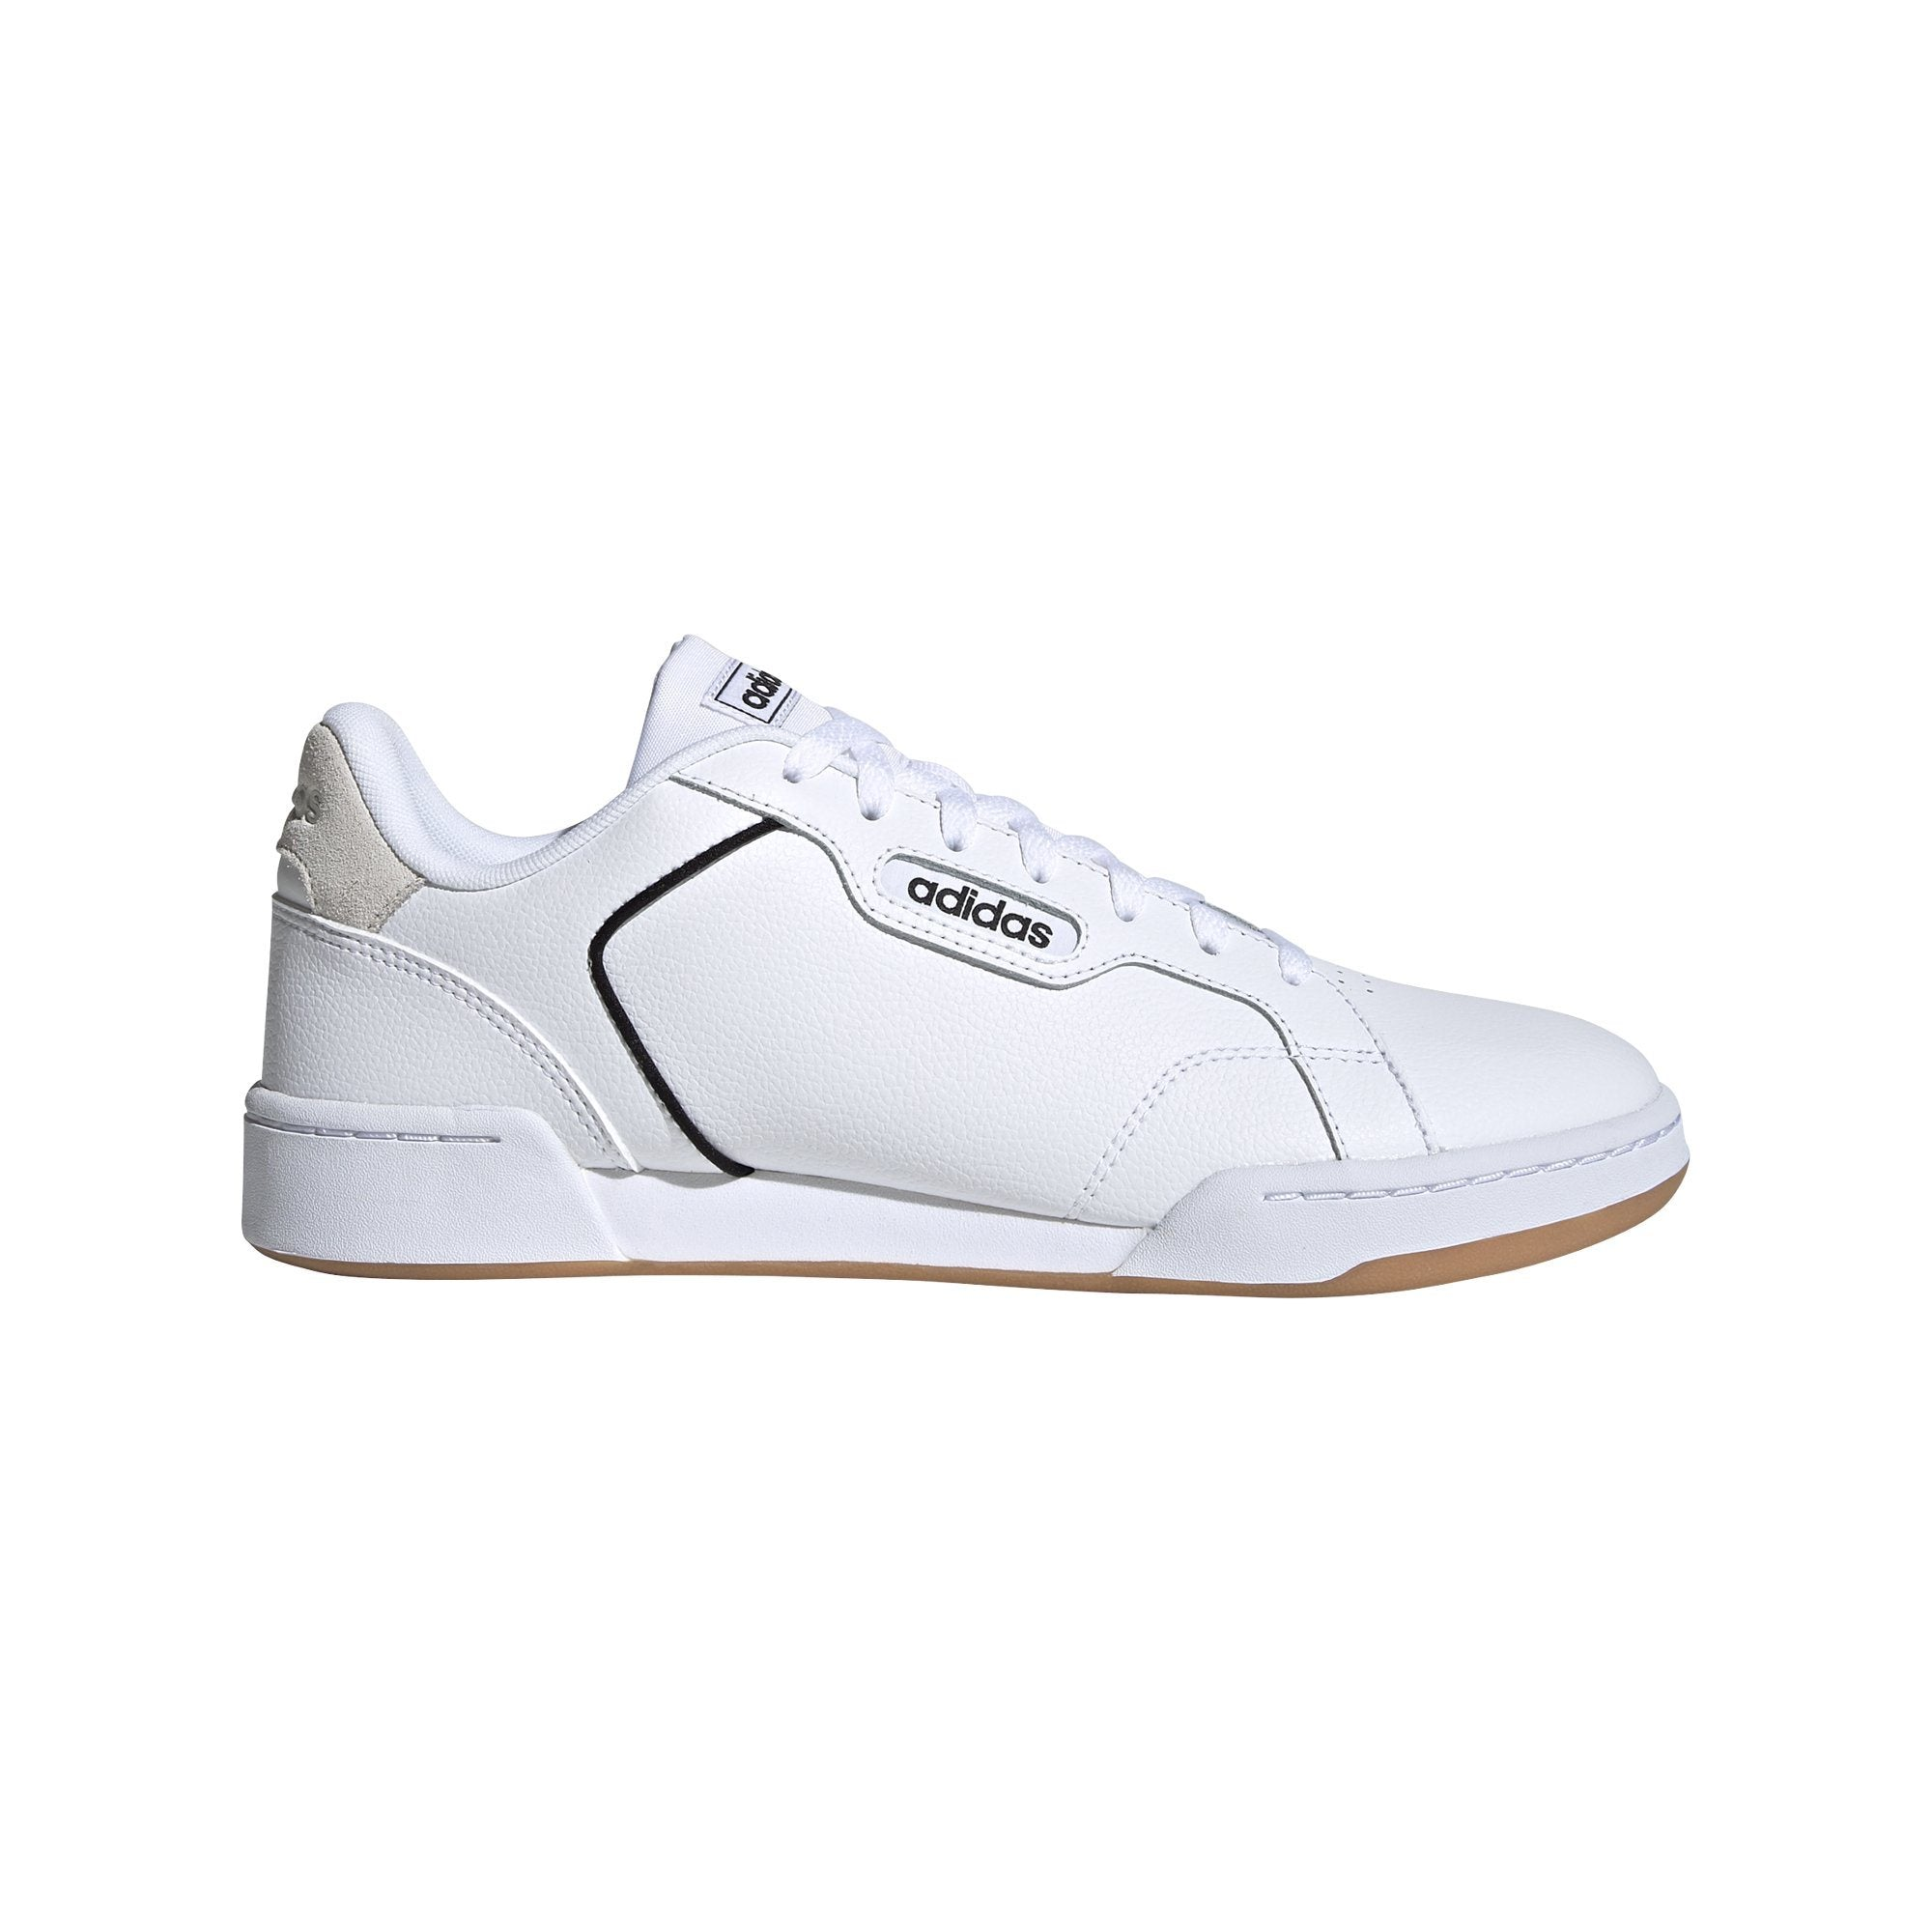 Adidas Mens Roguera - ftwr white/ftwr white/core black